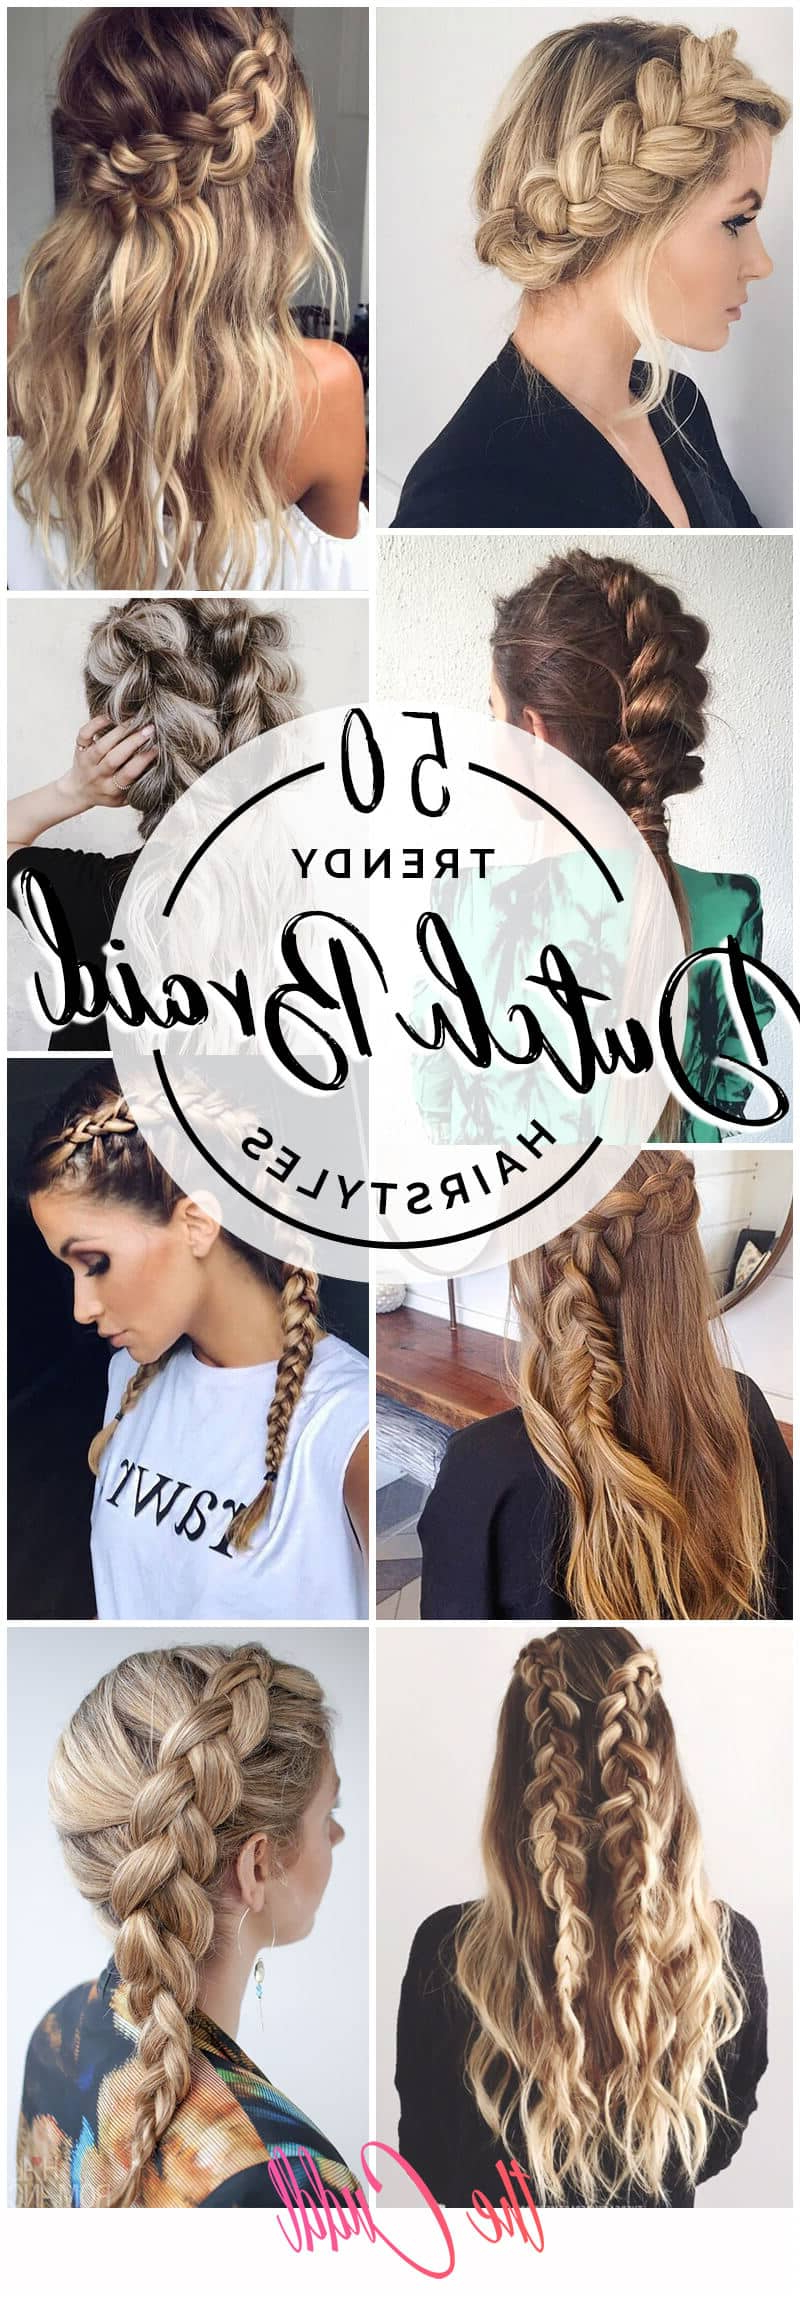 2019 Wide Crown Braided Hairstyles With A Twist Throughout 50 Trendy Dutch Braids Hairstyle Ideas To Keep You Cool In (View 4 of 20)